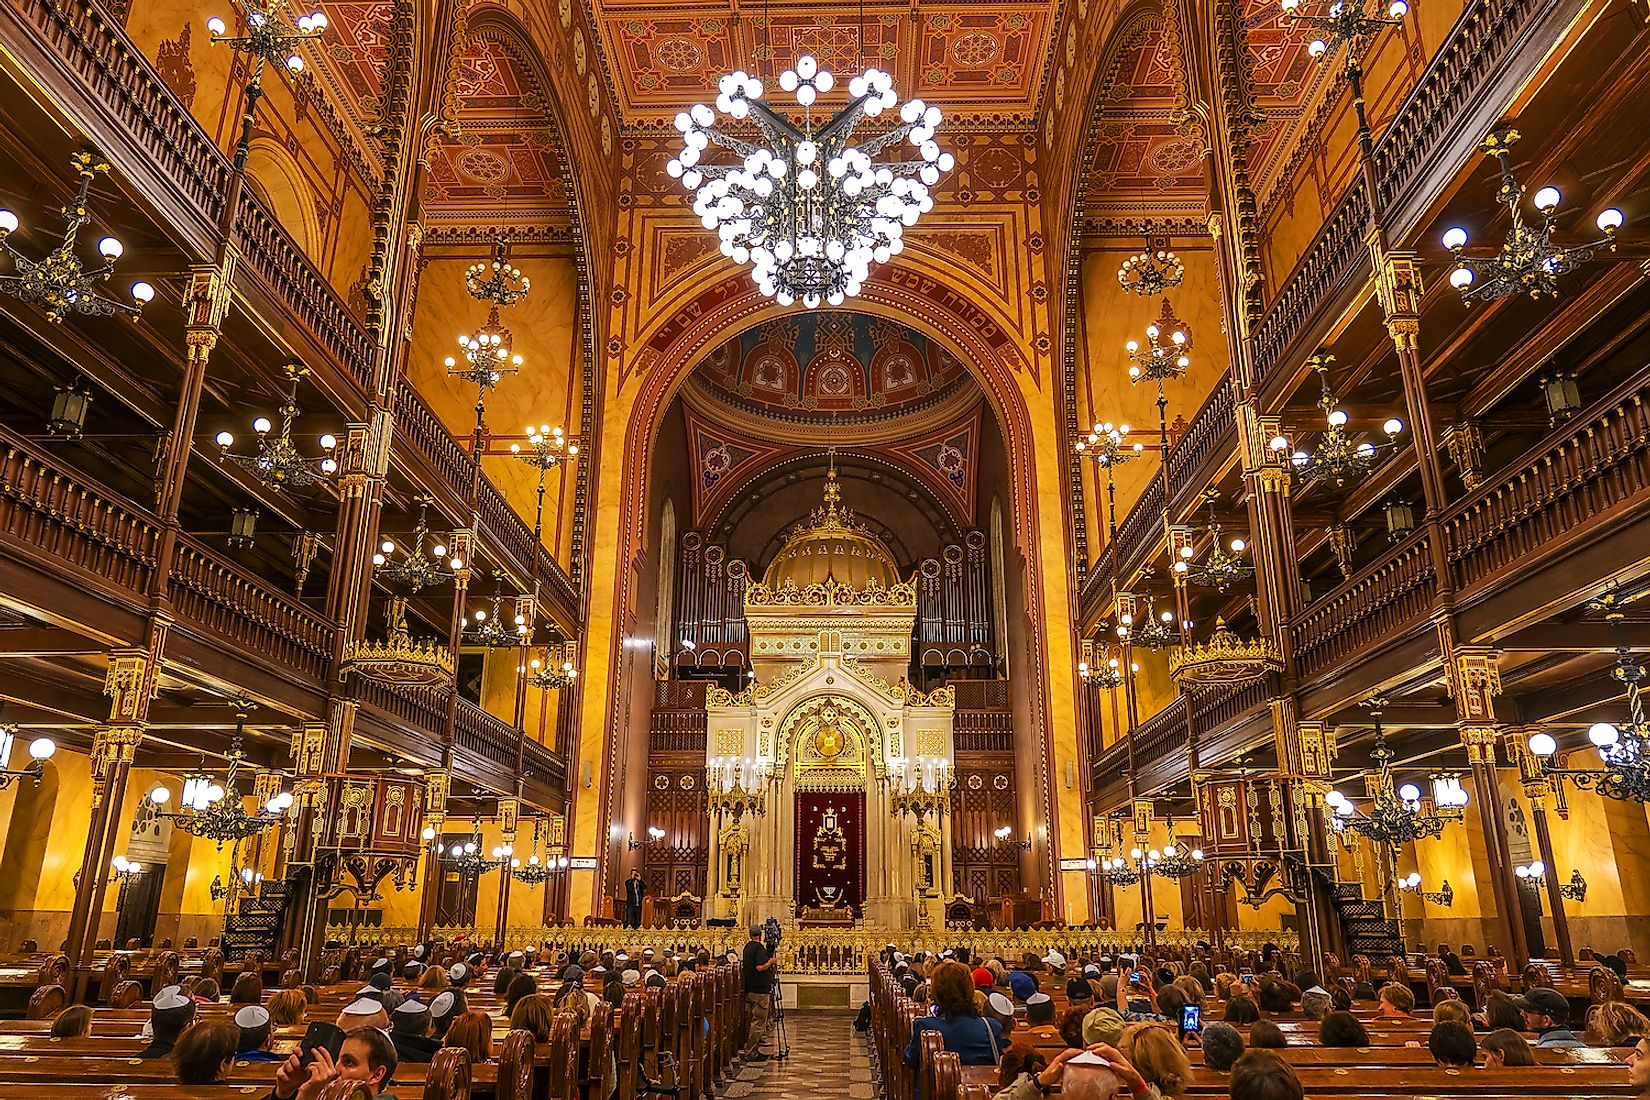 Interior of the Great Synagogue in Dohany Street, largest synagogue in Europe and the second largest in the world. Image credit: Ungvari Attila/Shutterstock.com